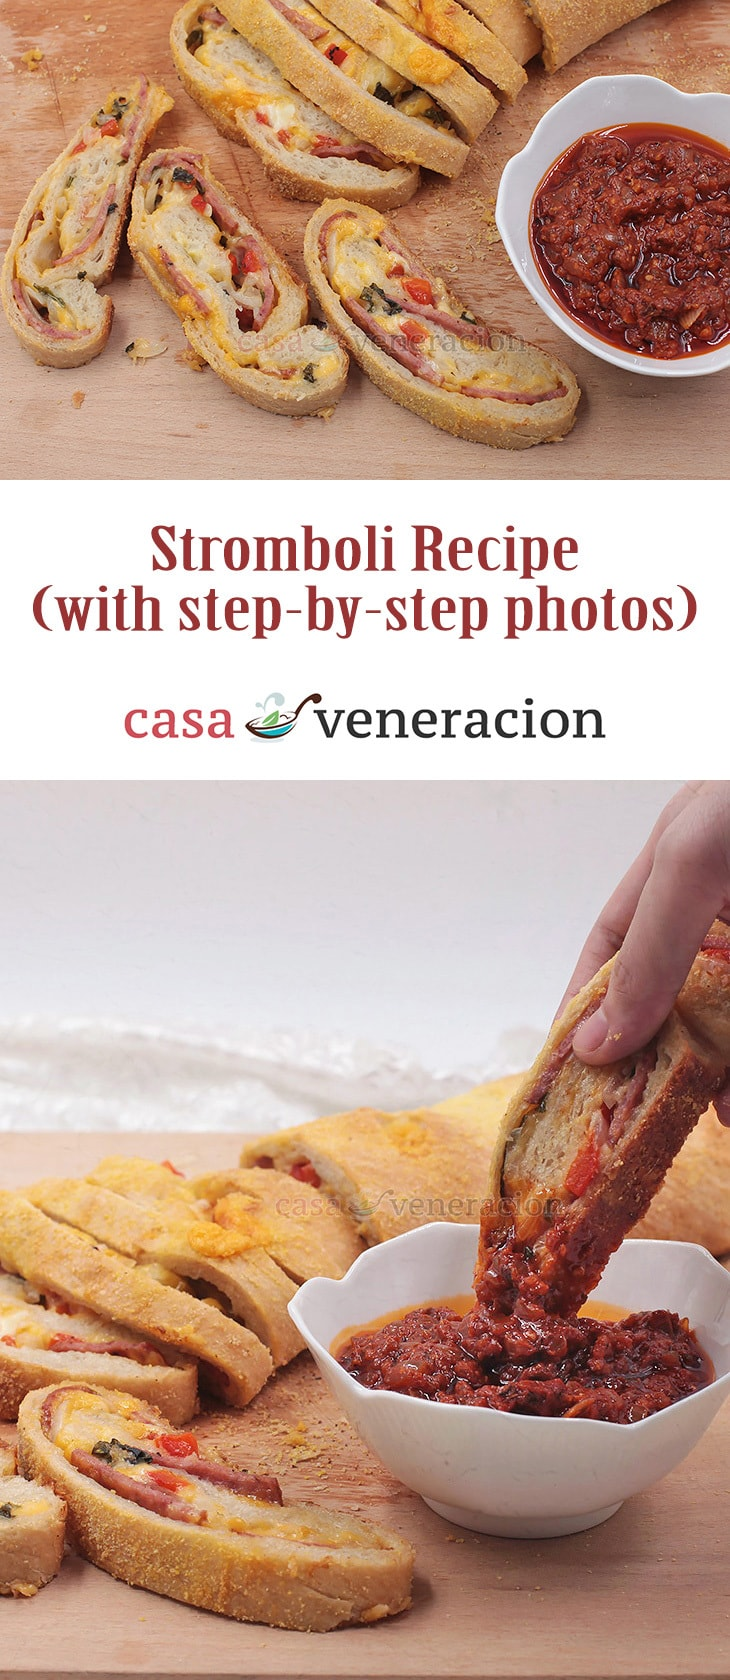 As Italian as its name may sound, stromboli—rolled bread stuffed with cheese and Italian meats—is American and named after a film starring Ingrid Bergman.